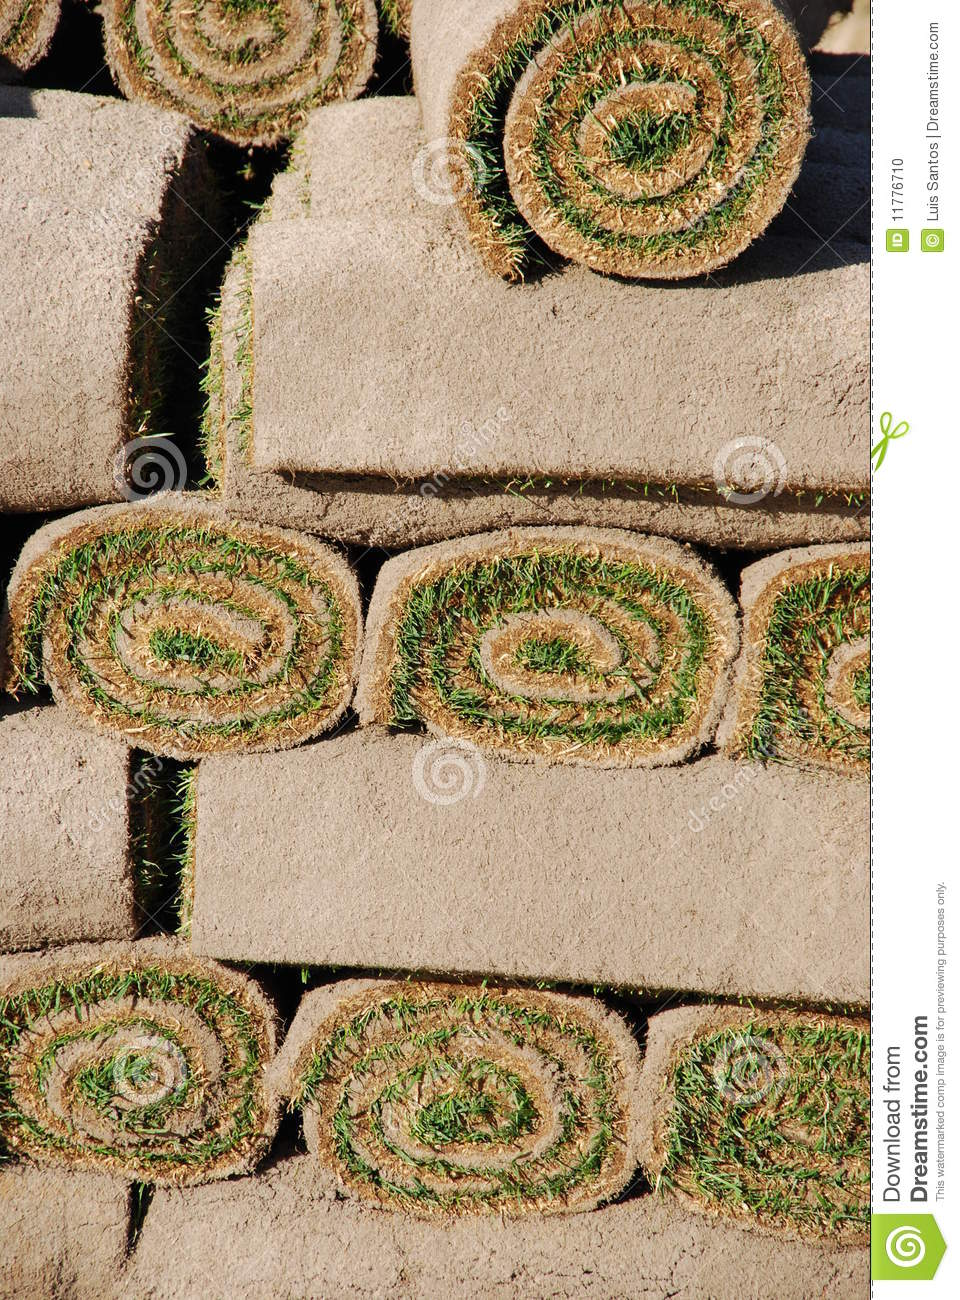 Rolls do sod (fundo)